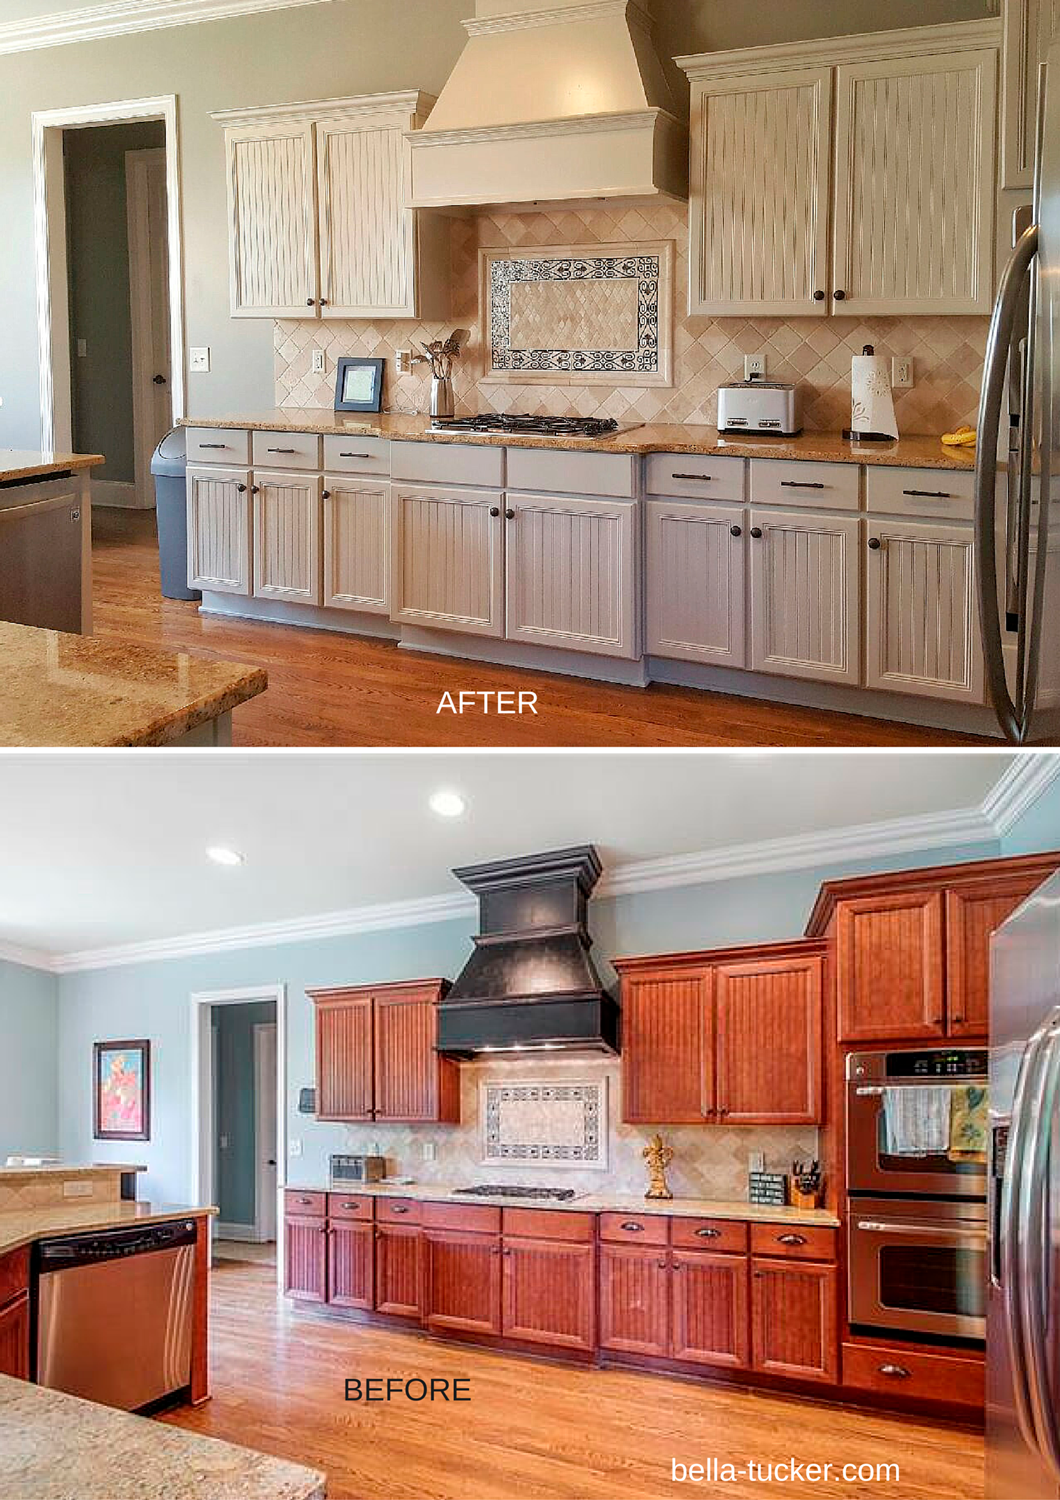 Painted Cabinets Nashville TN Before and After Photos on ideas for painting crown molding, ideas for painting kitchen islands, ideas for painting oak cabinets, ideas for painting windows, ideas for painting cabinet doors,